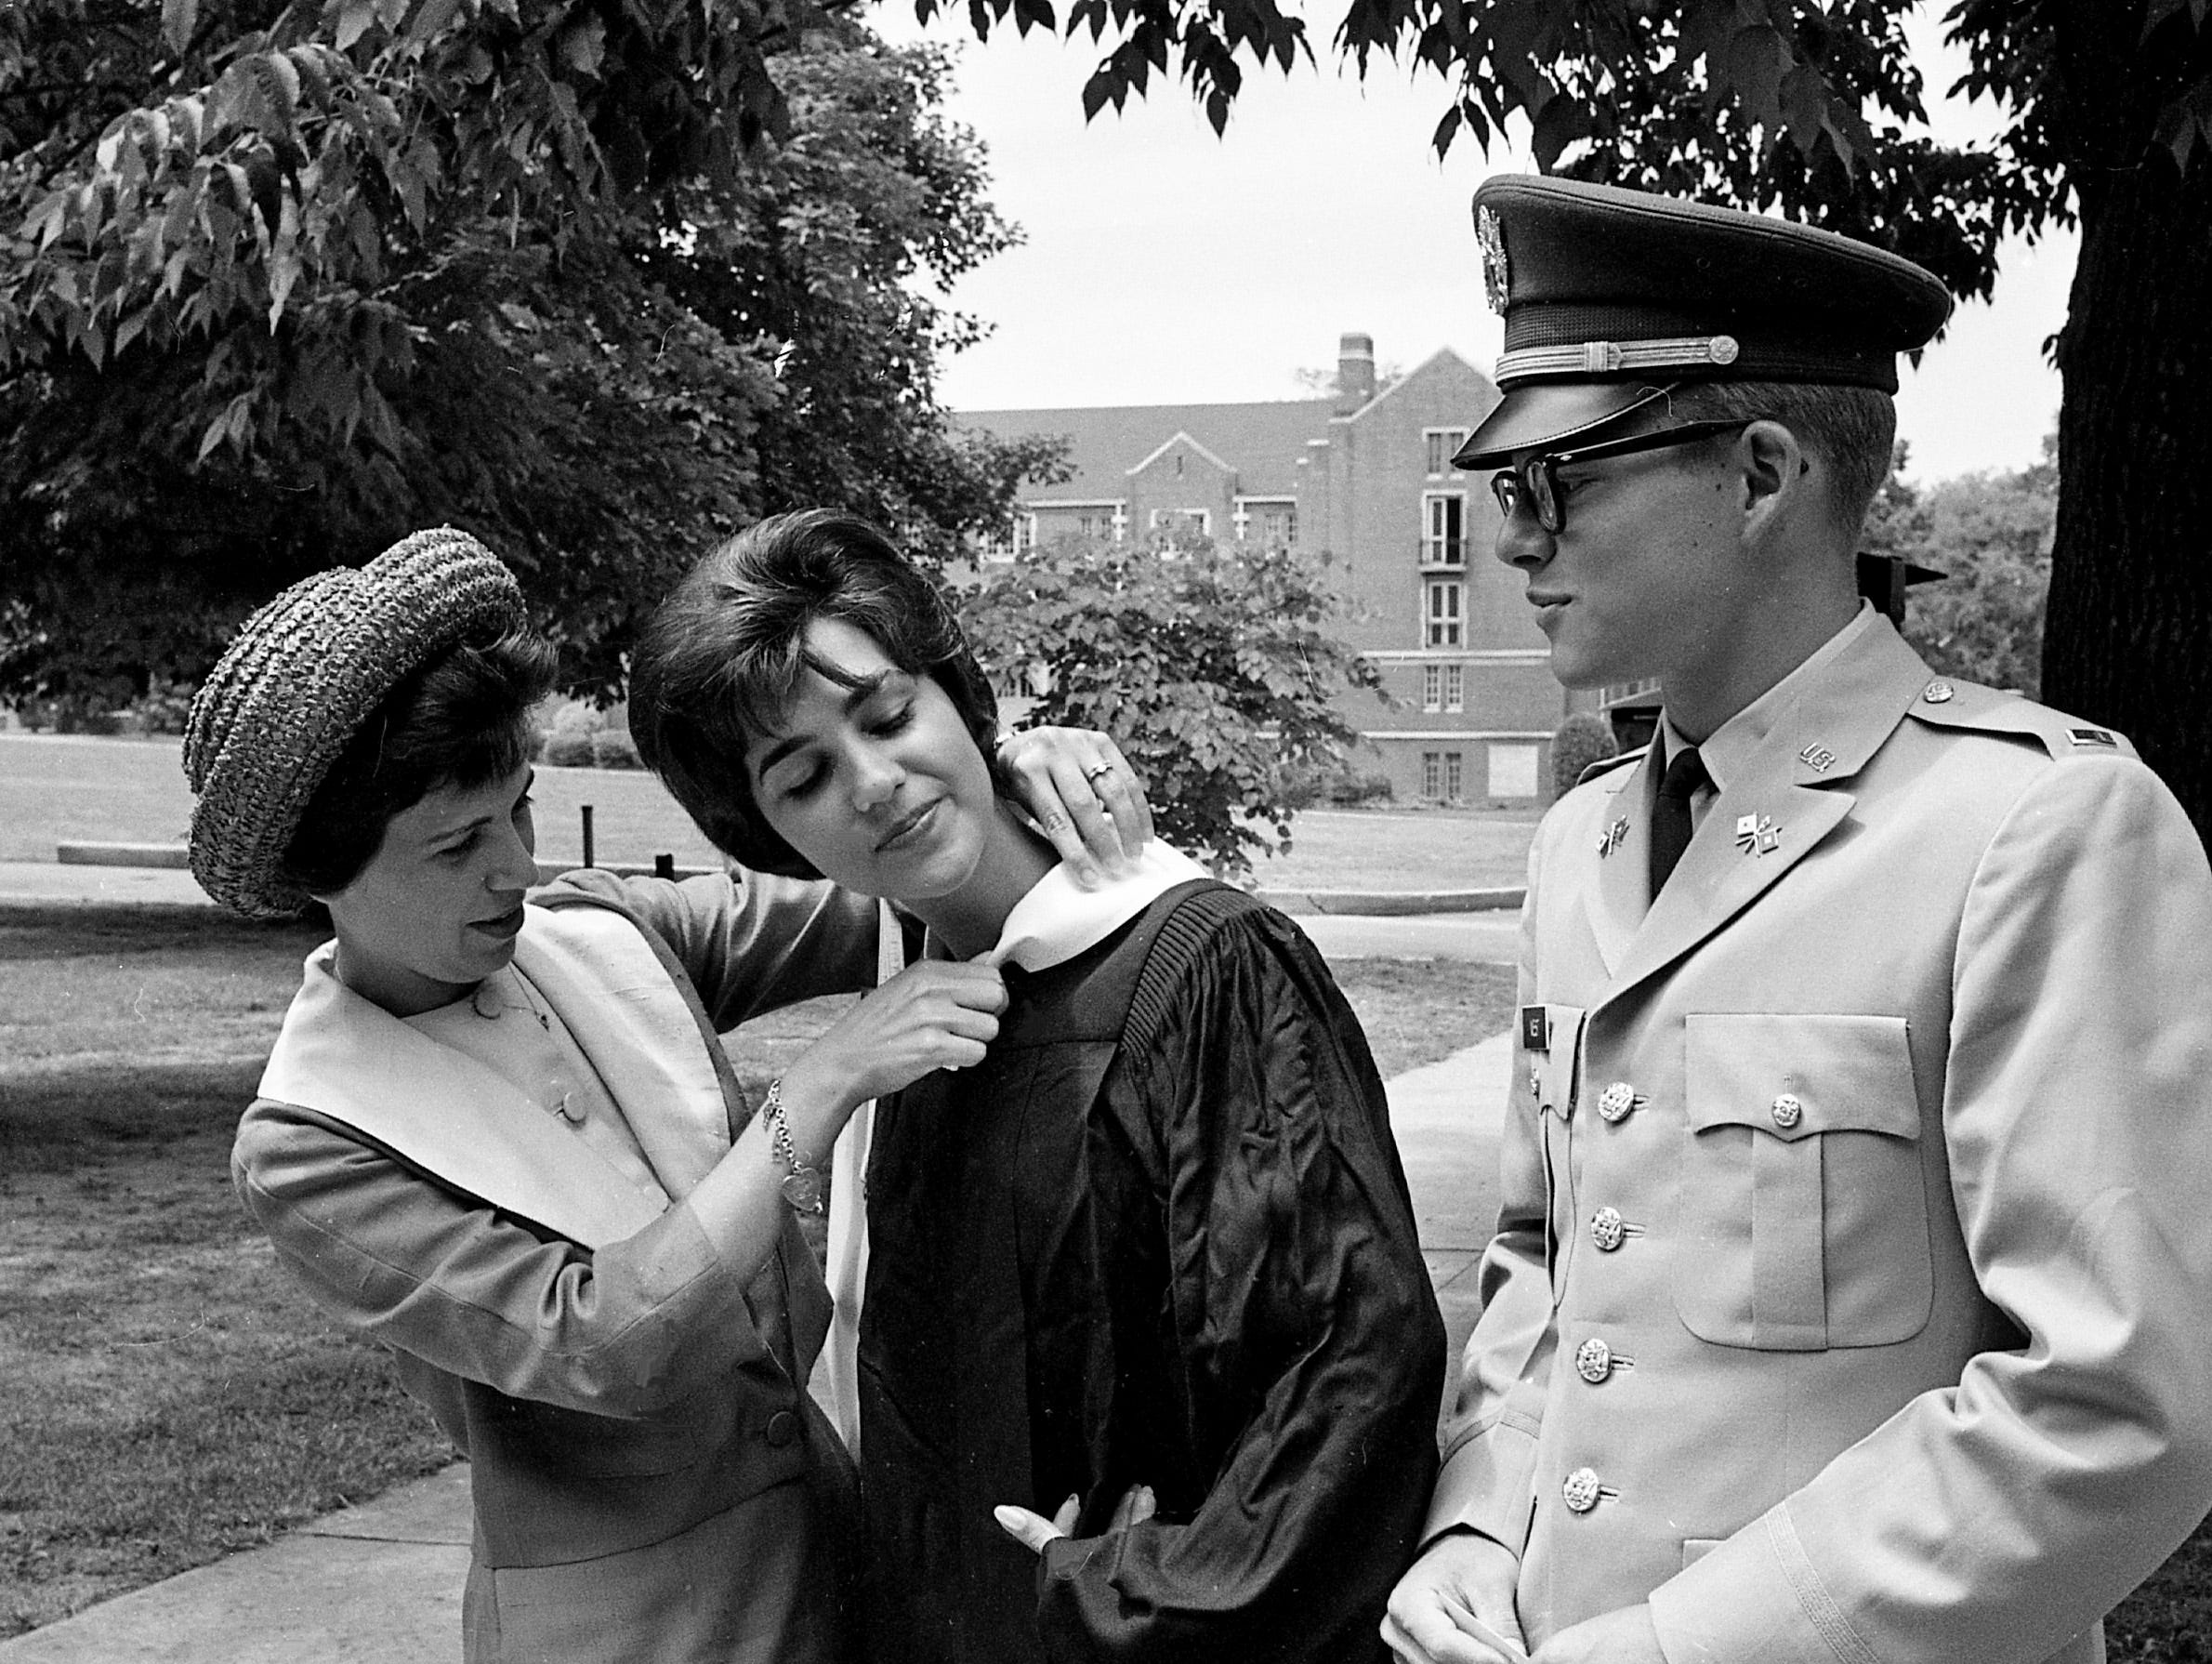 Tom West, right, of Louisville, Kentucky, one of the students who graduated from Vanderbilt University on June 3, 1962, watches Mrs. Camille Thomas, left, of Florence, South Carolina, adjust the graduation gown of her sister, Peggy Oms of New Orleans.